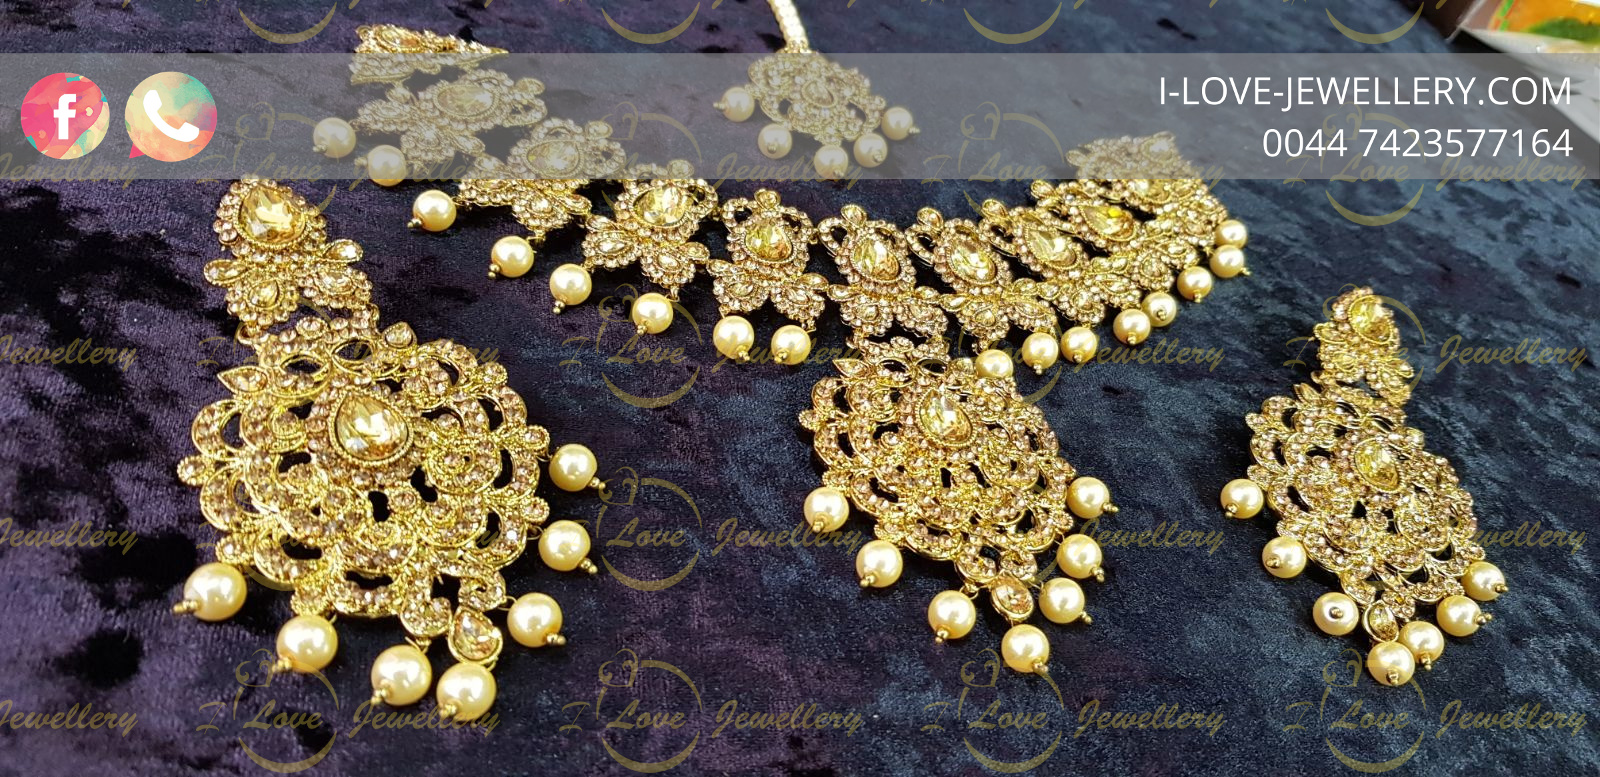 Pakistani jewellery - pearl necklace - multi necklace- golden necklace - champagne necklace - silver necklace - mehndi jewellery - Pakistani bridal jewellery - wholesale Pakistani jewellery - bespoke Pakistani jewellery